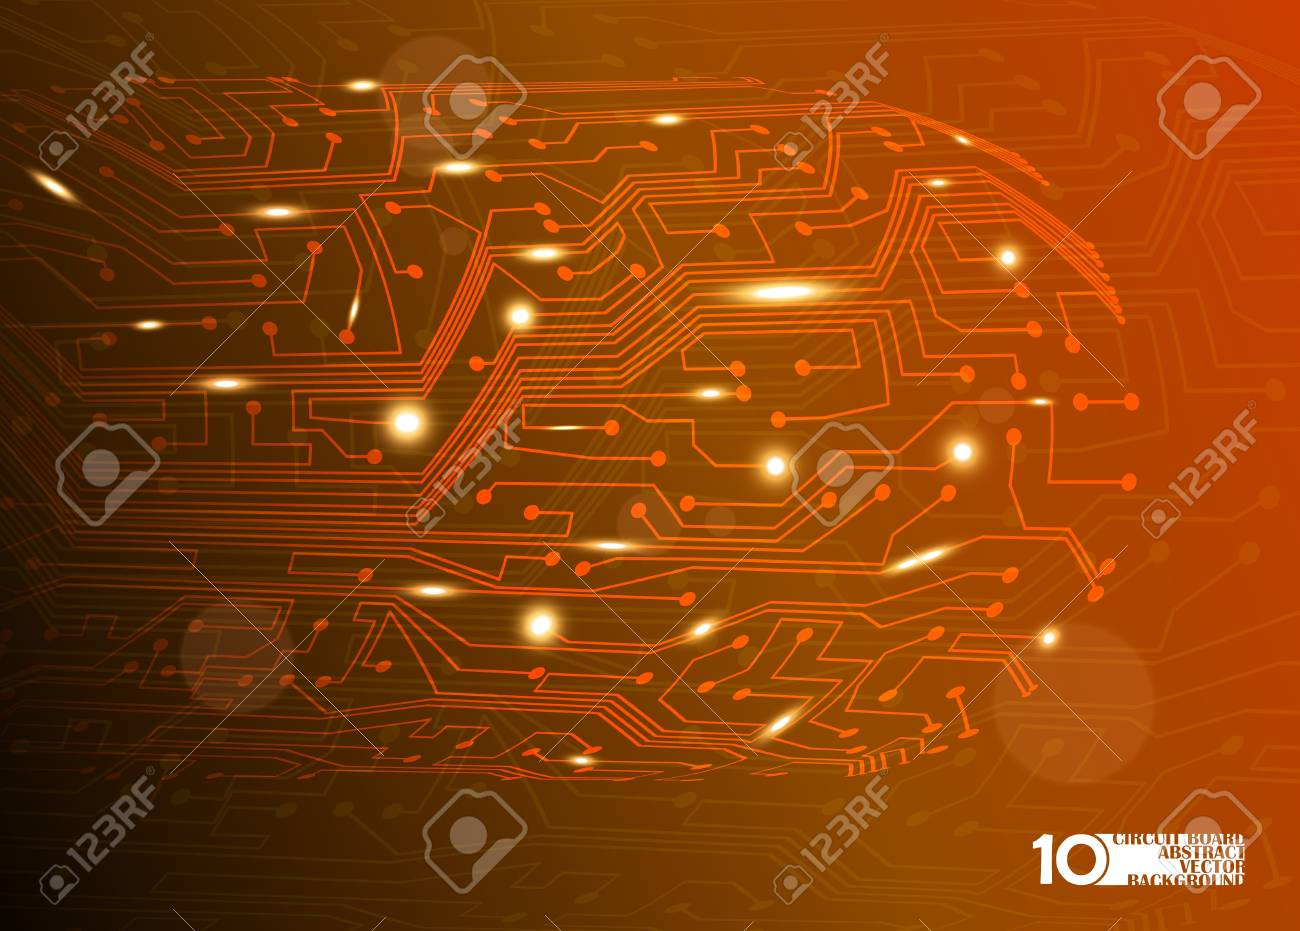 circuit board vector background, technology illustration eps10 Stock Vector - 12084495